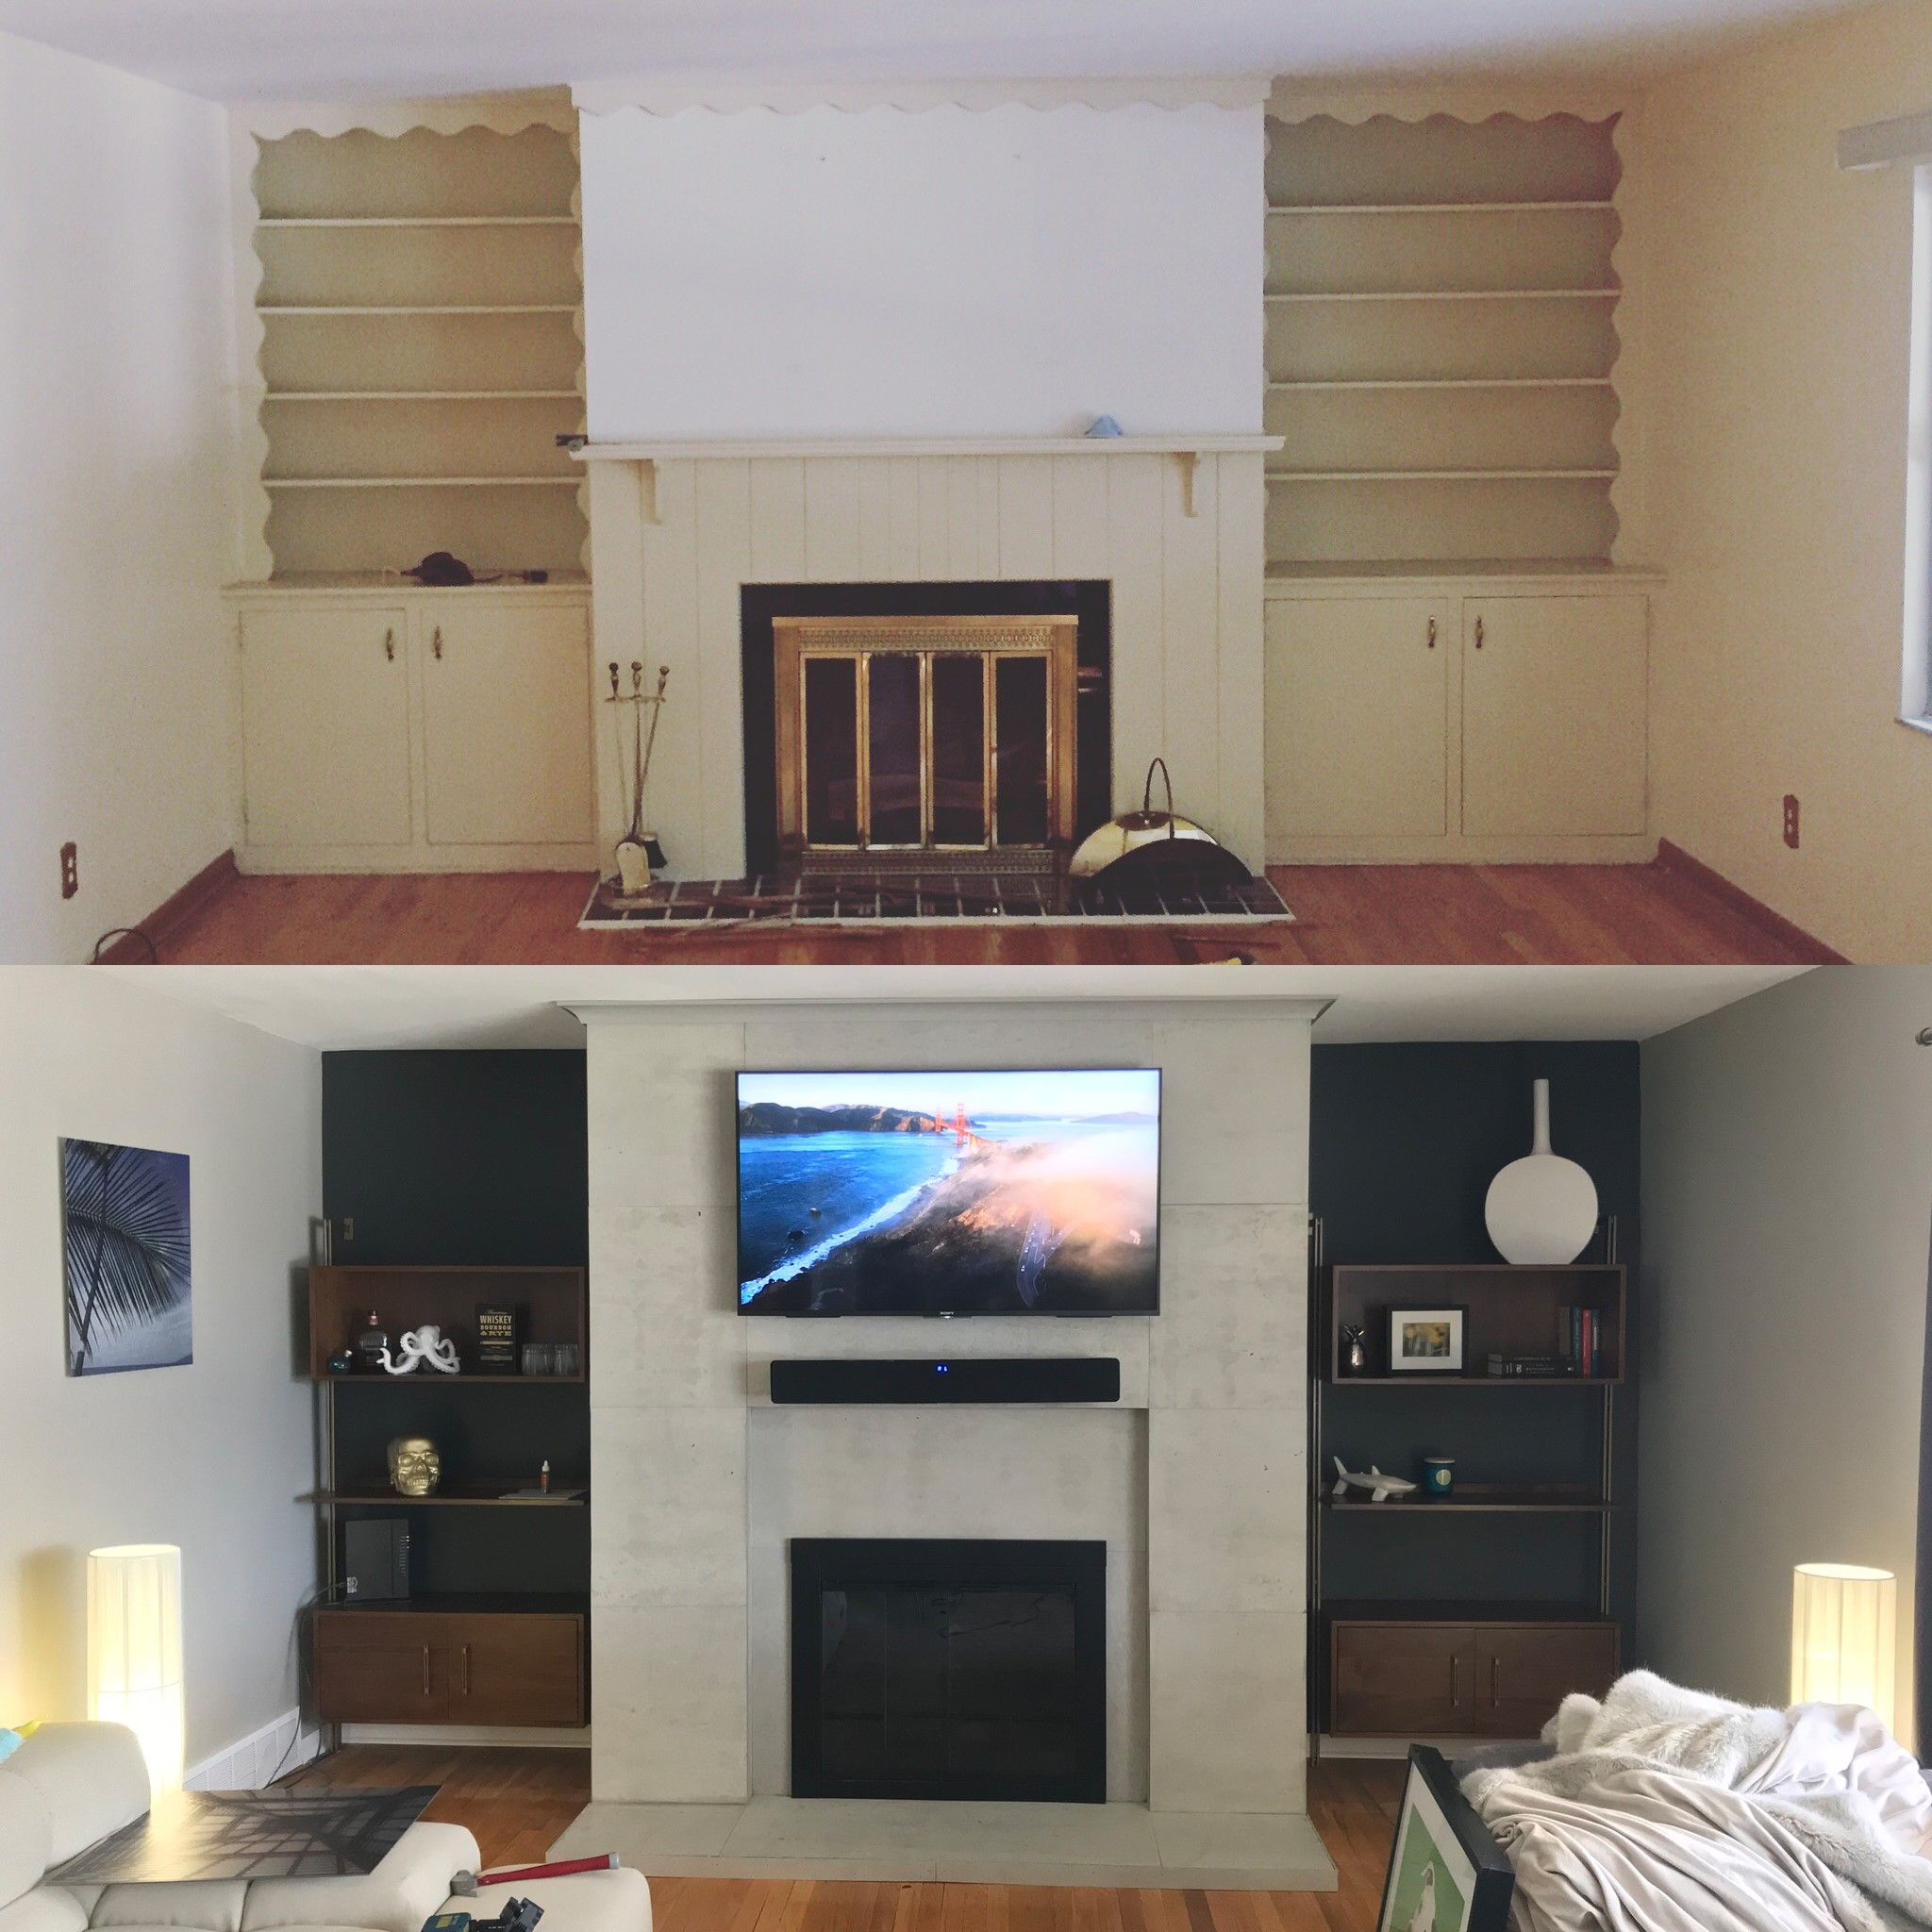 Painting Accent Wall Around Fireplace Dated: This Dated Fireplace And Built In Were Fancied Up With